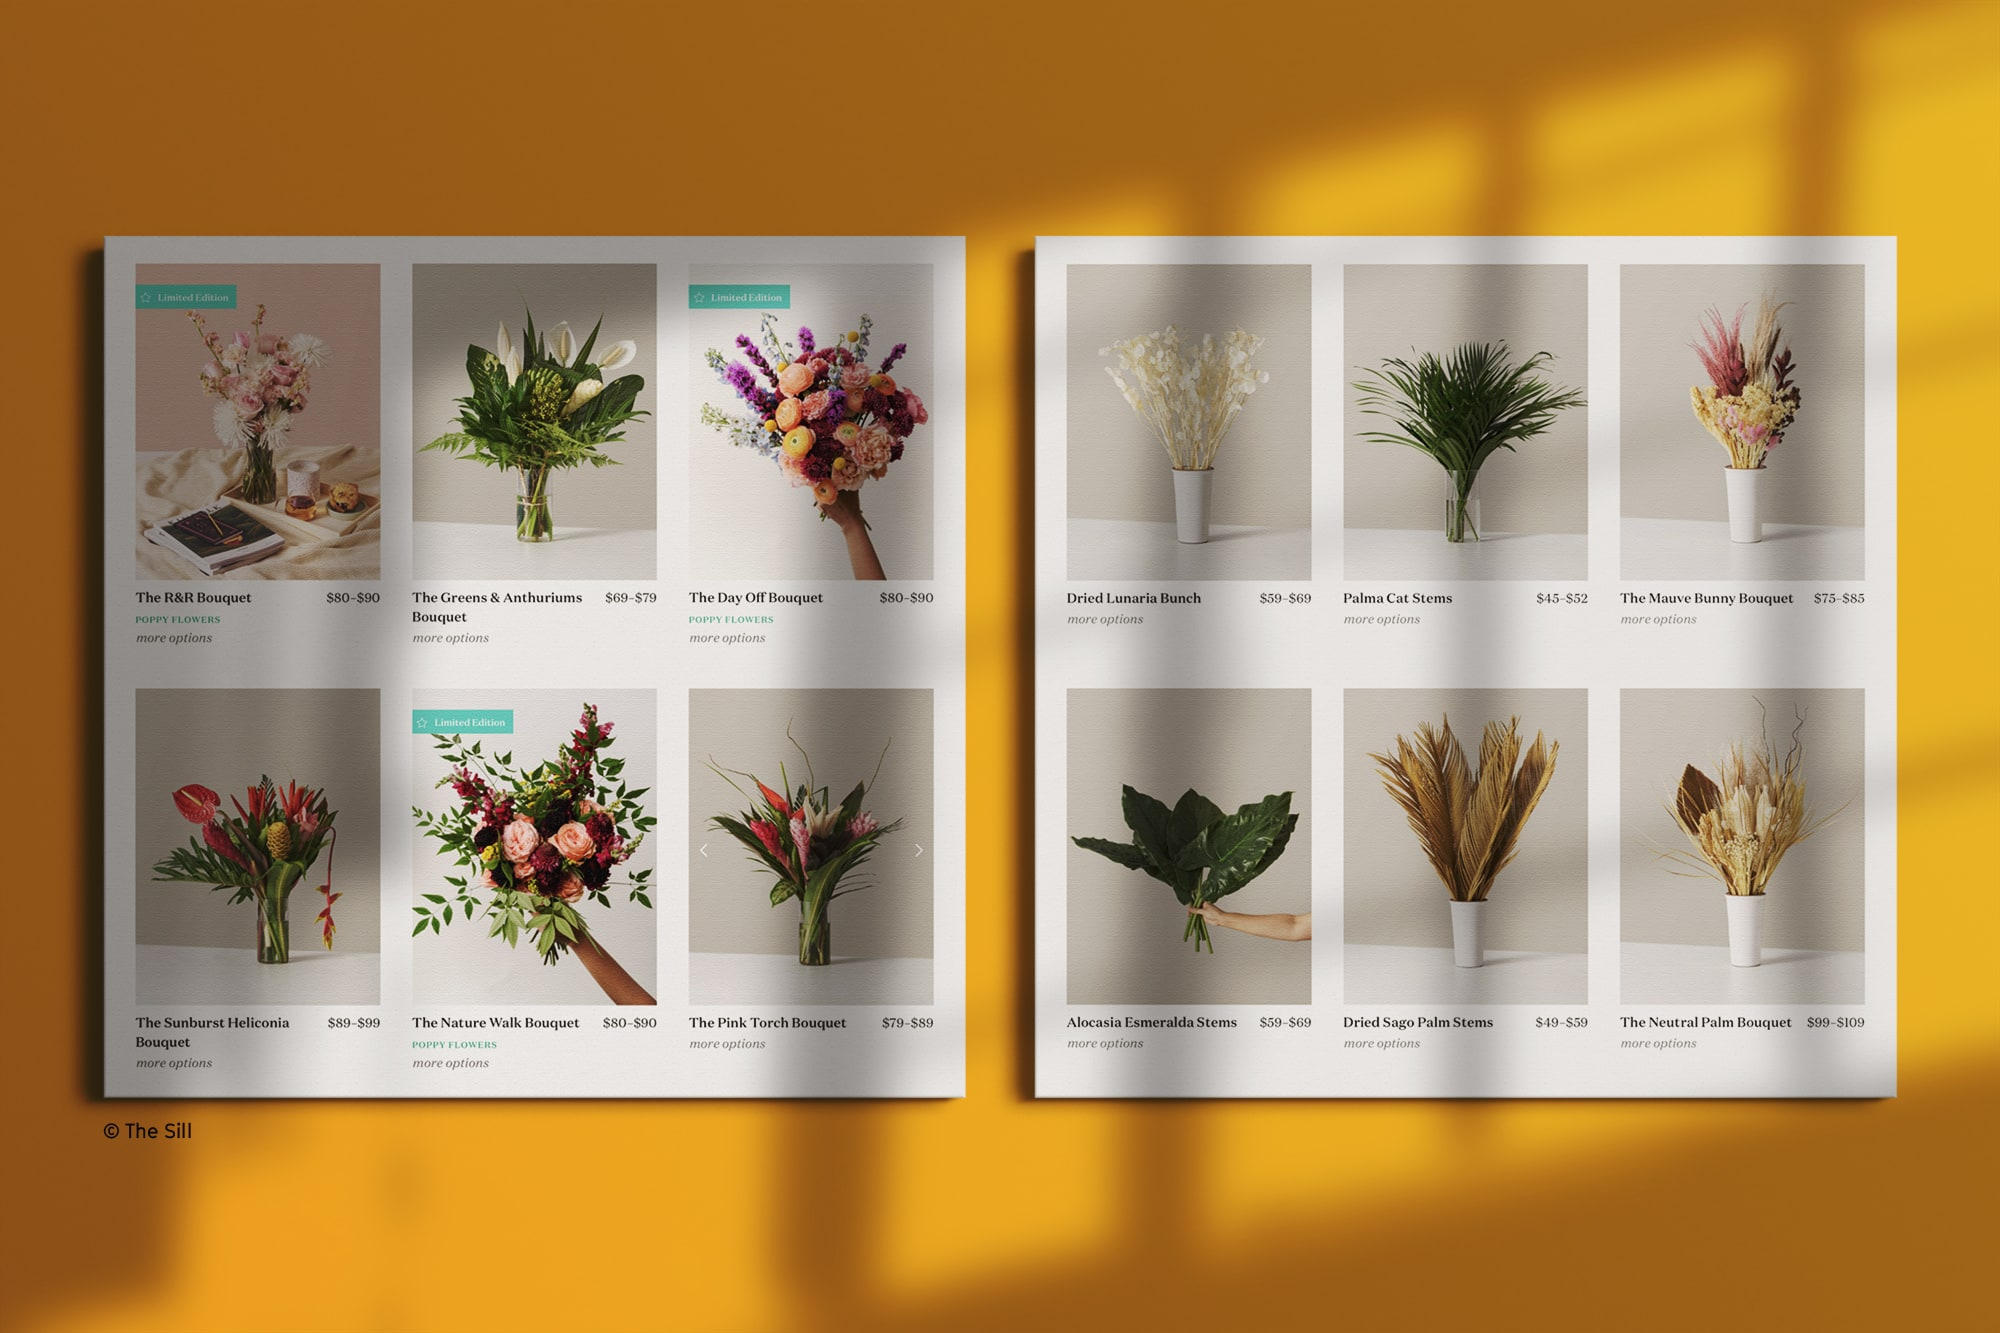 Product images from The Sill showing consistency across photos